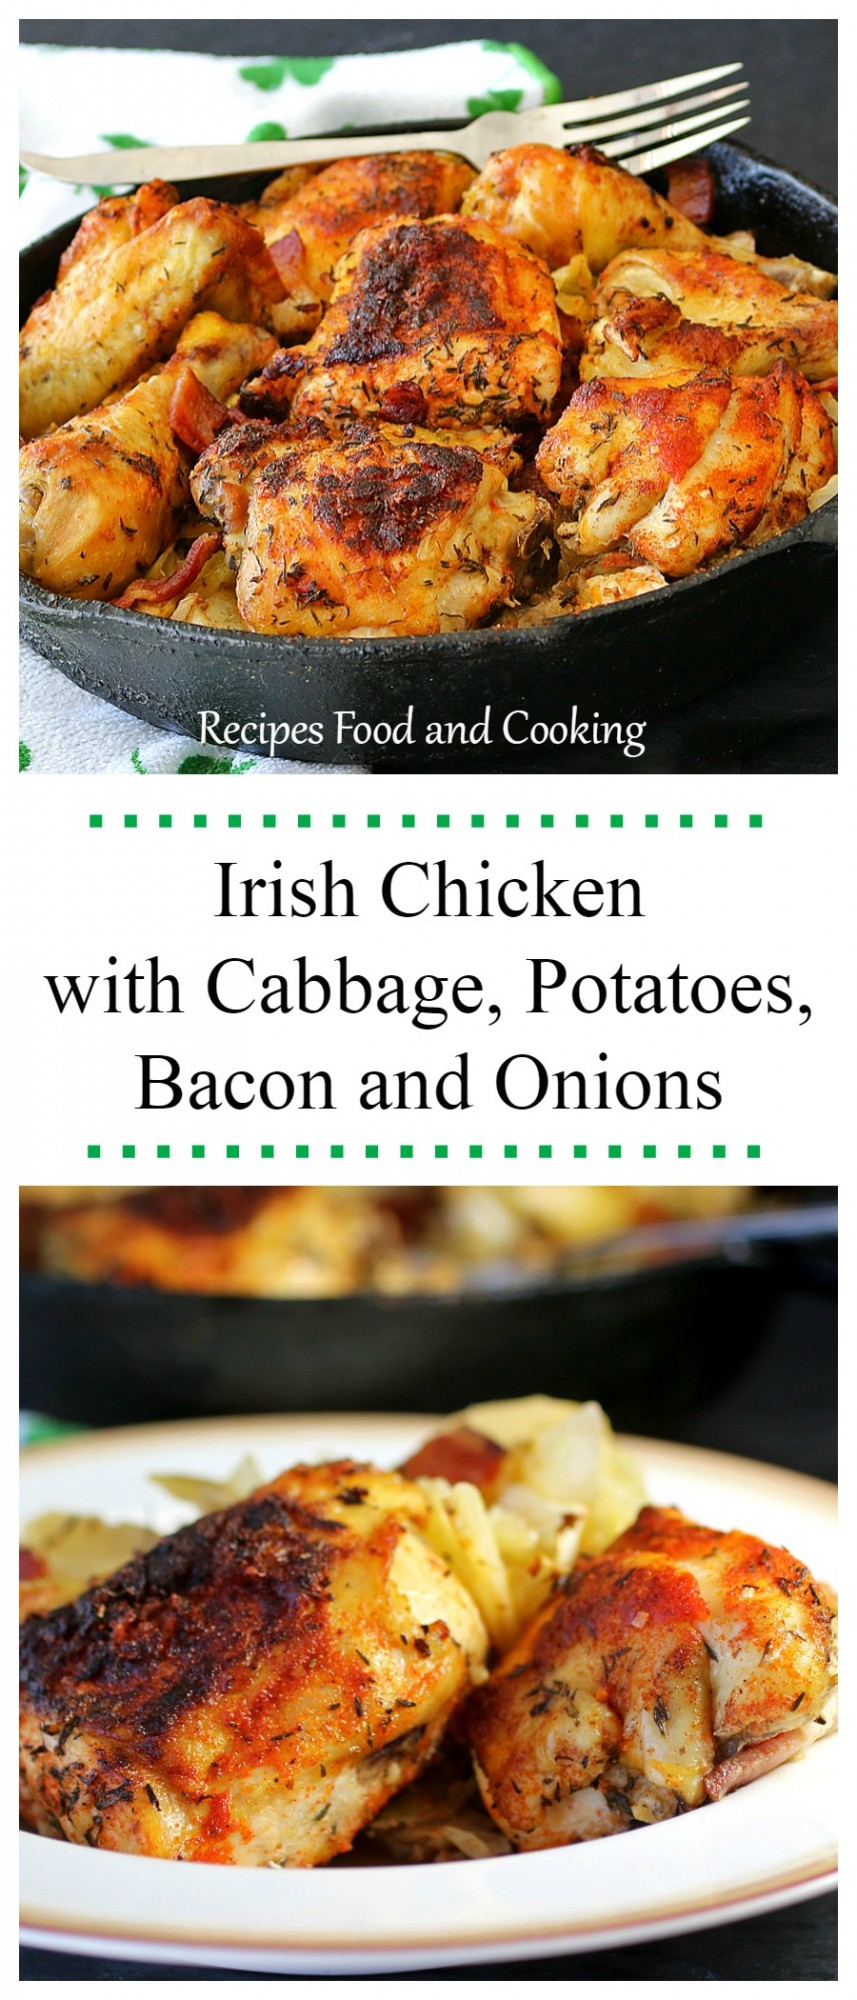 30 Amazing Irish Recipes for All Occasions 34